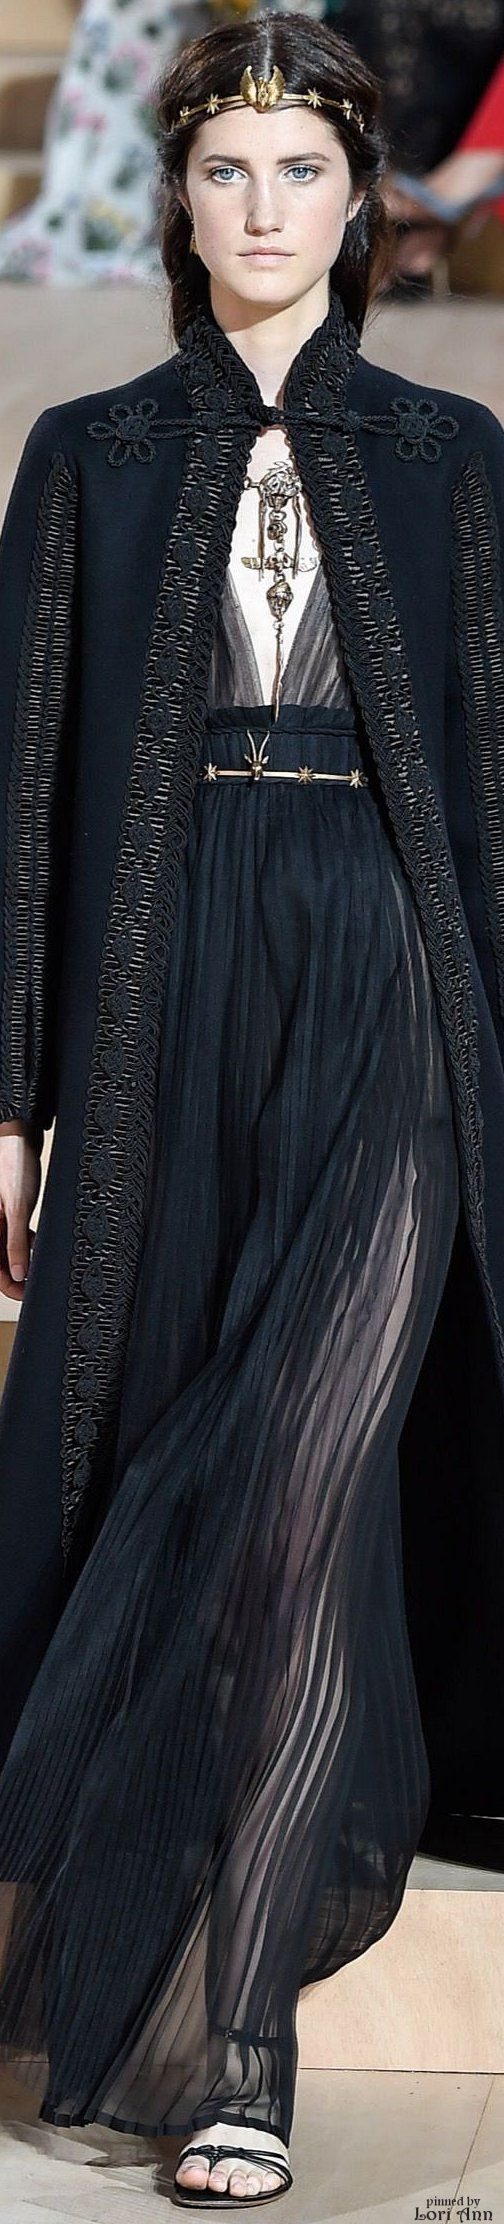 Valentino Couture Fall 2015 ....  aka My outfit for the Renaissance Fair this year XD